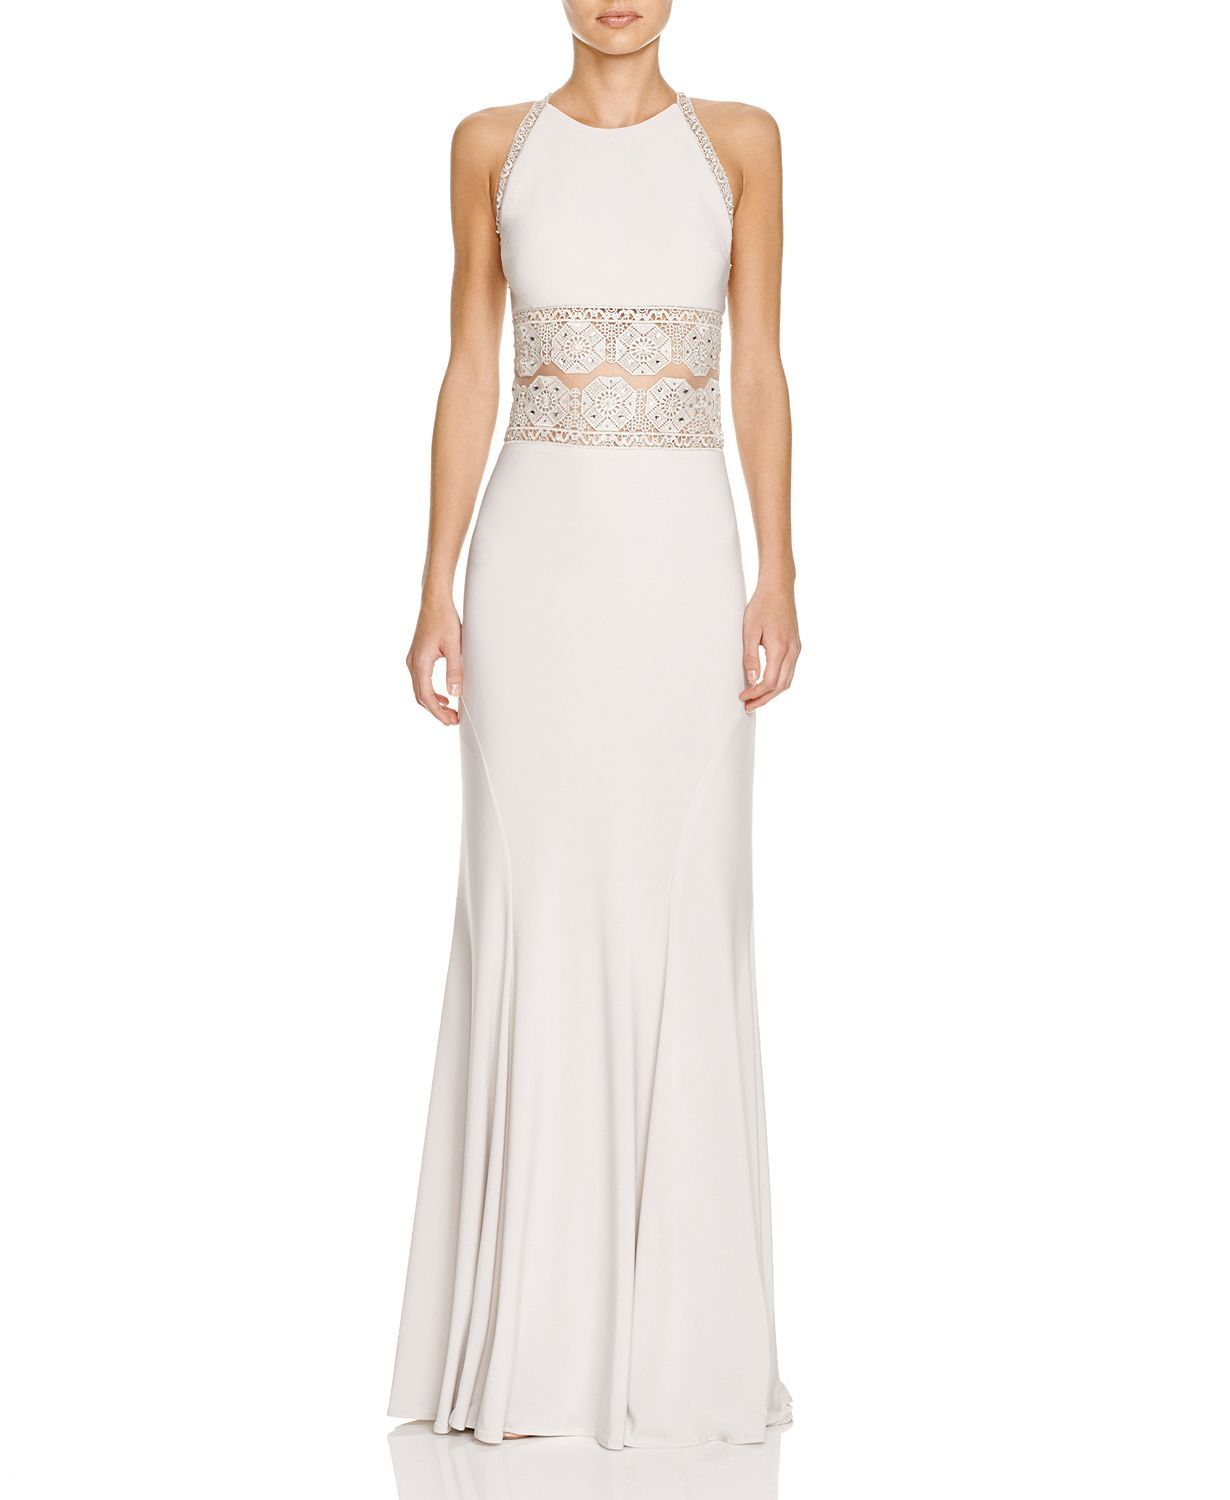 LM Collection Boho Illusion Lace Detail Gown | Bloomingdales's